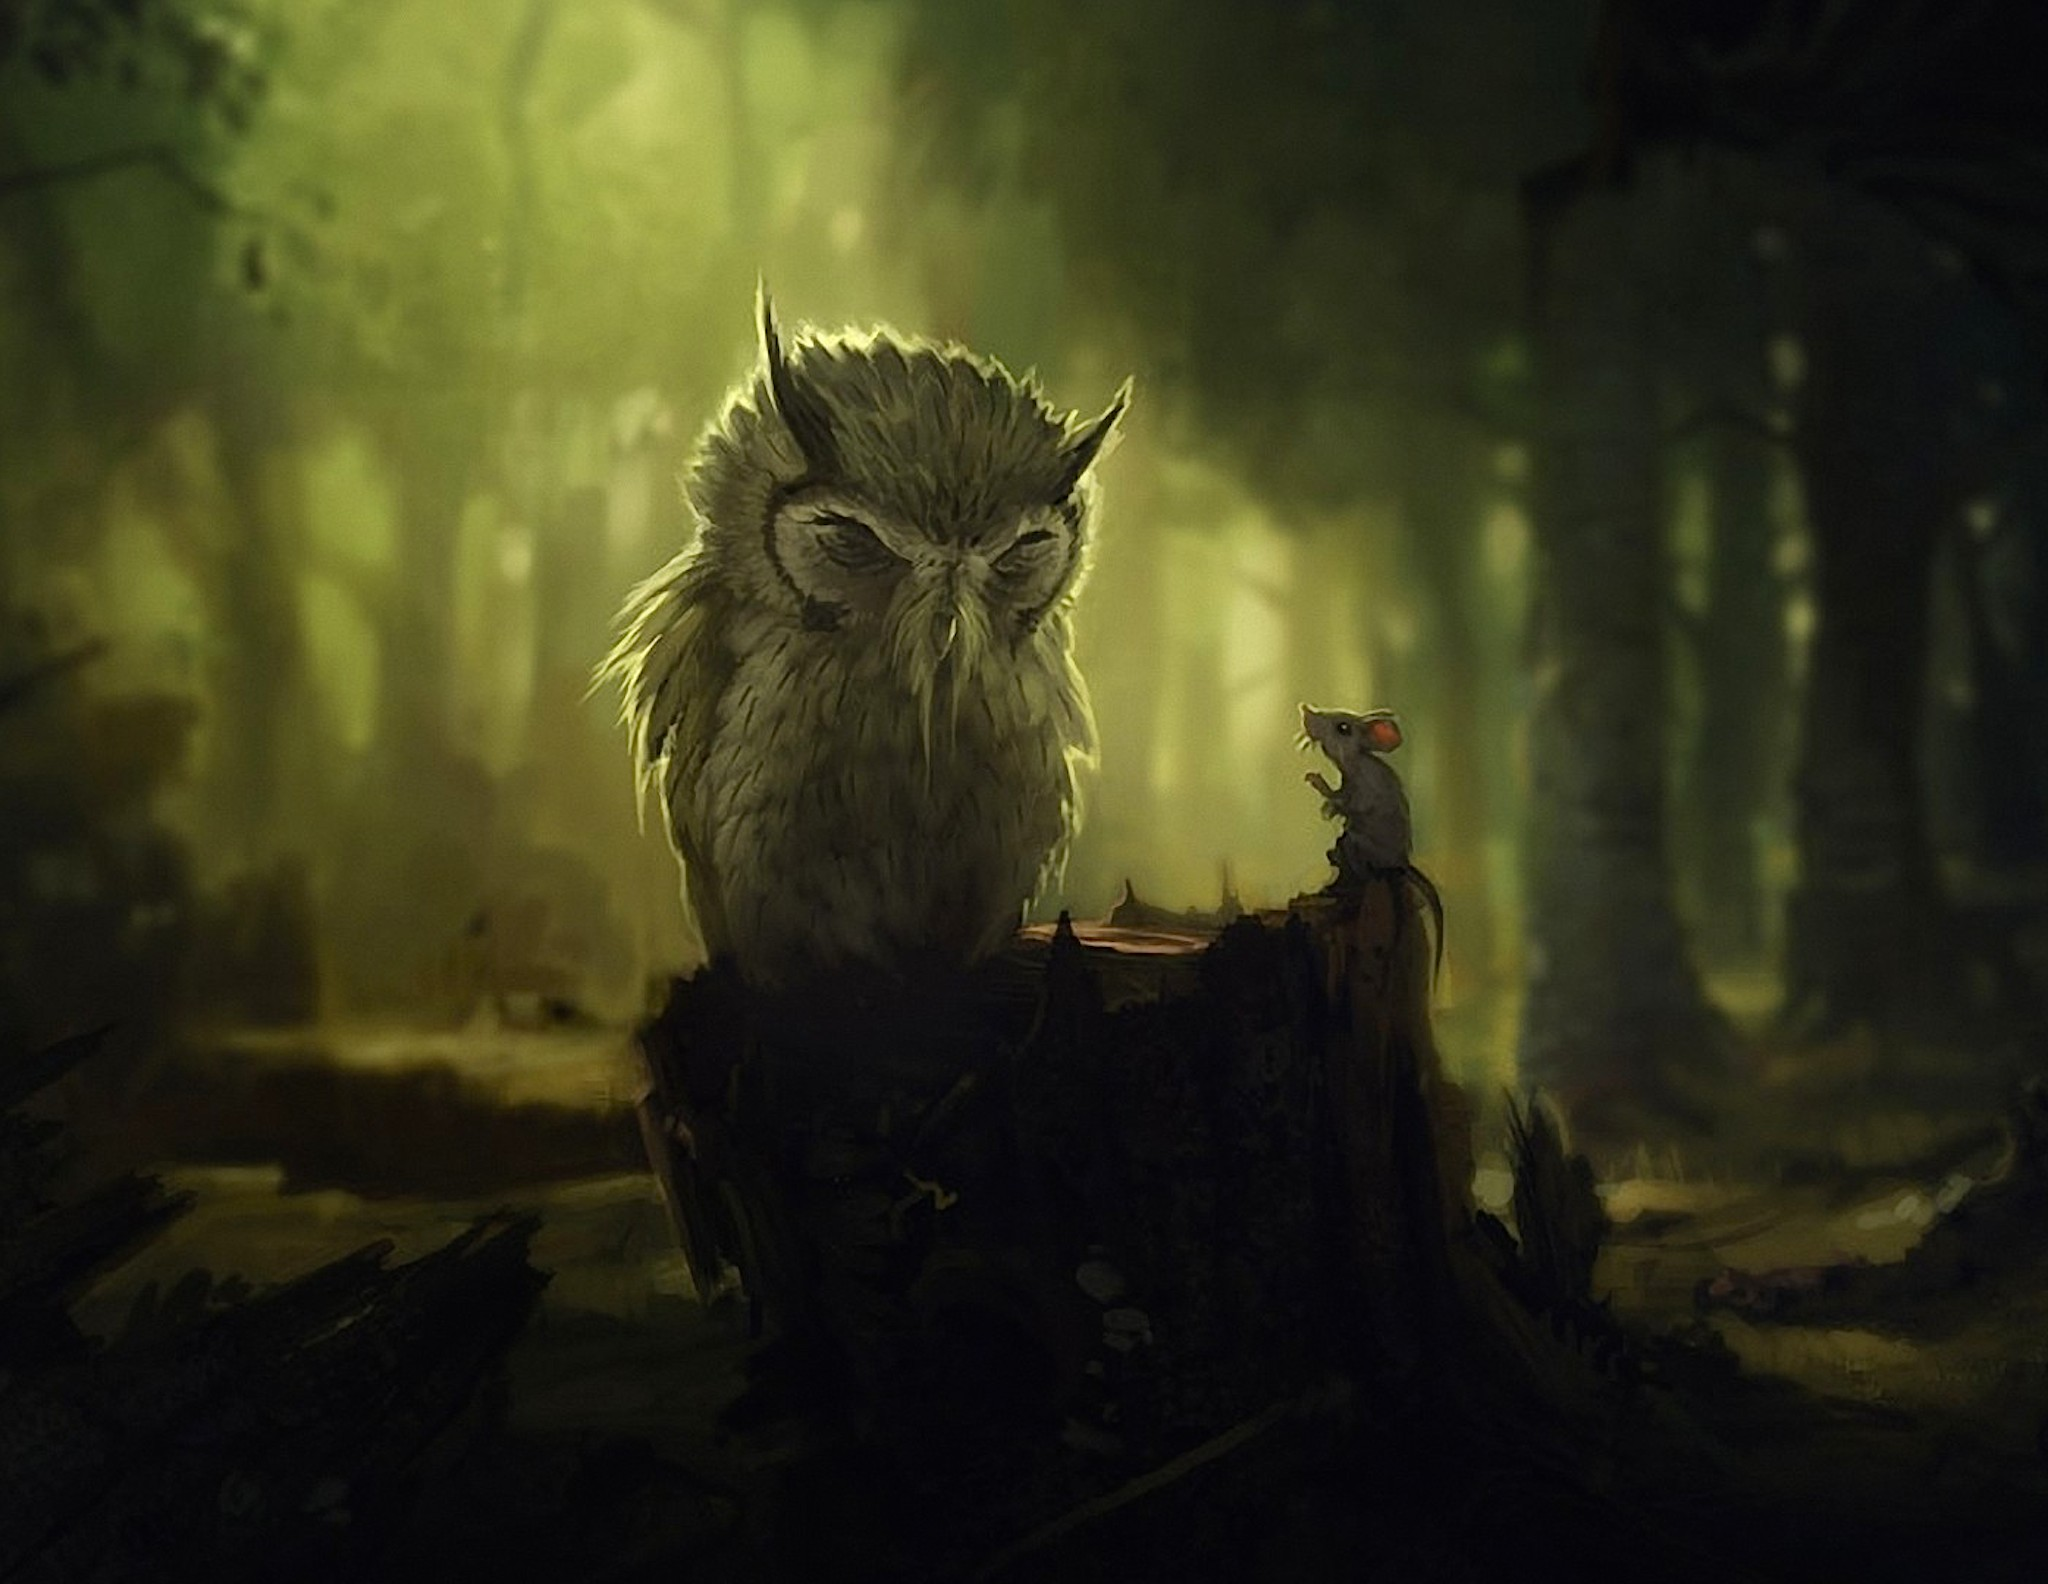 Fantasy Night Owl Wallpaper Free Hd Download